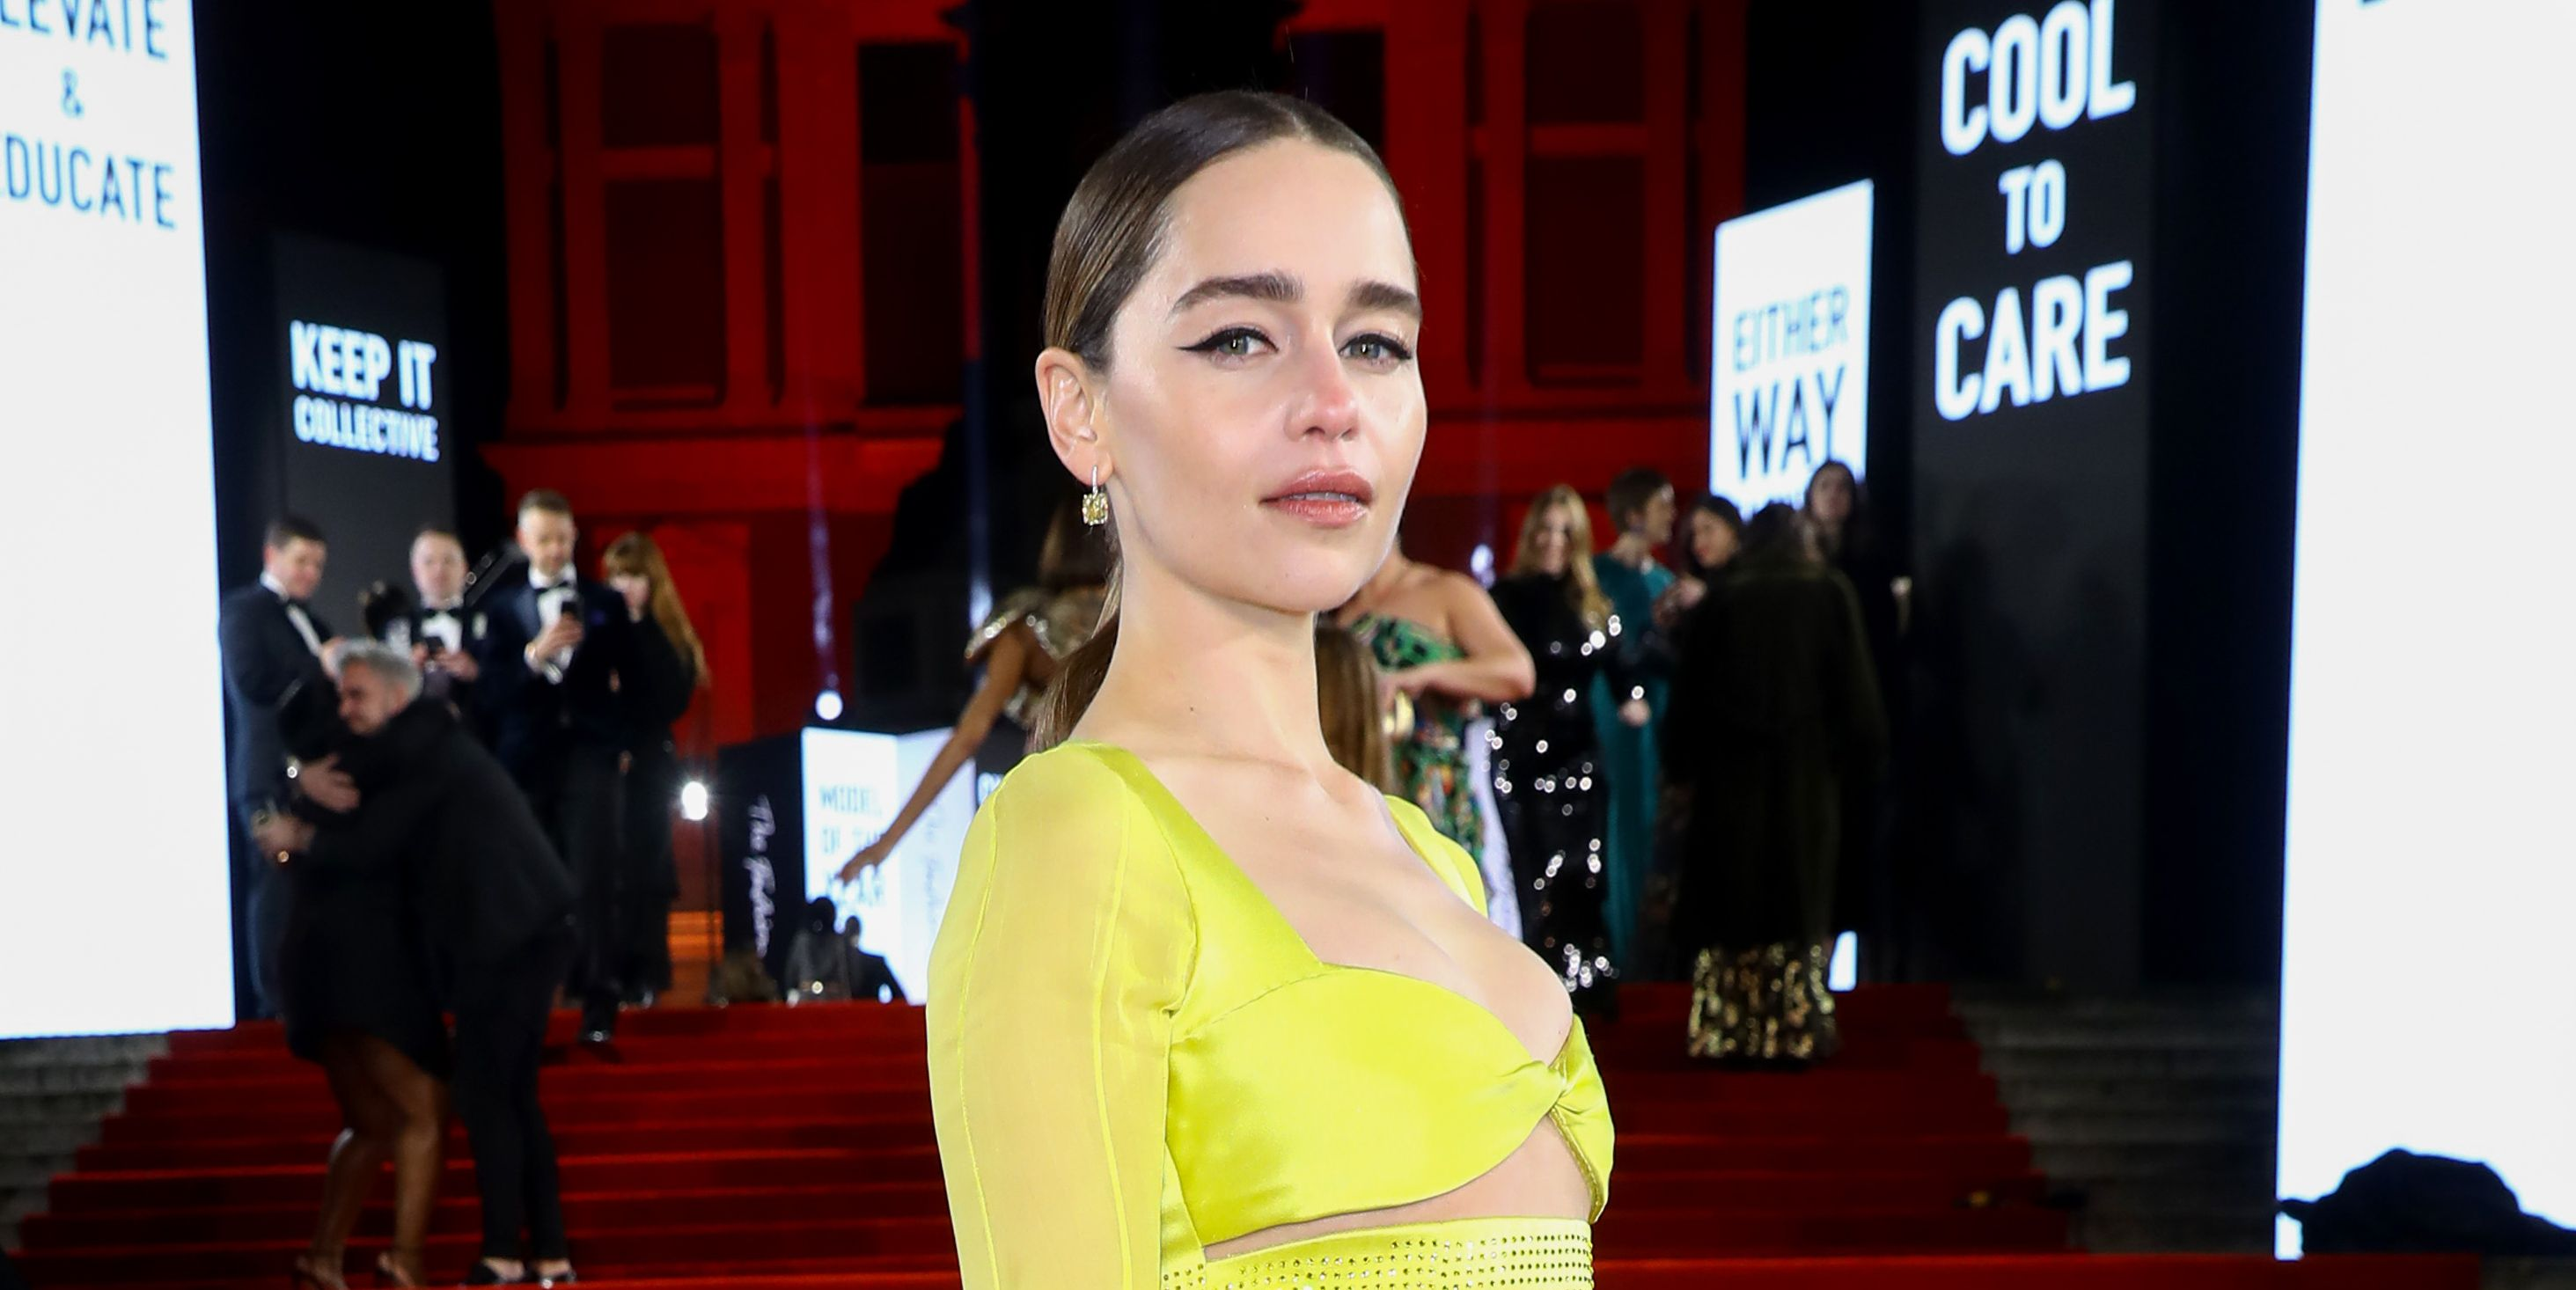 Style And Beauty The Best Looks From The 2019 British